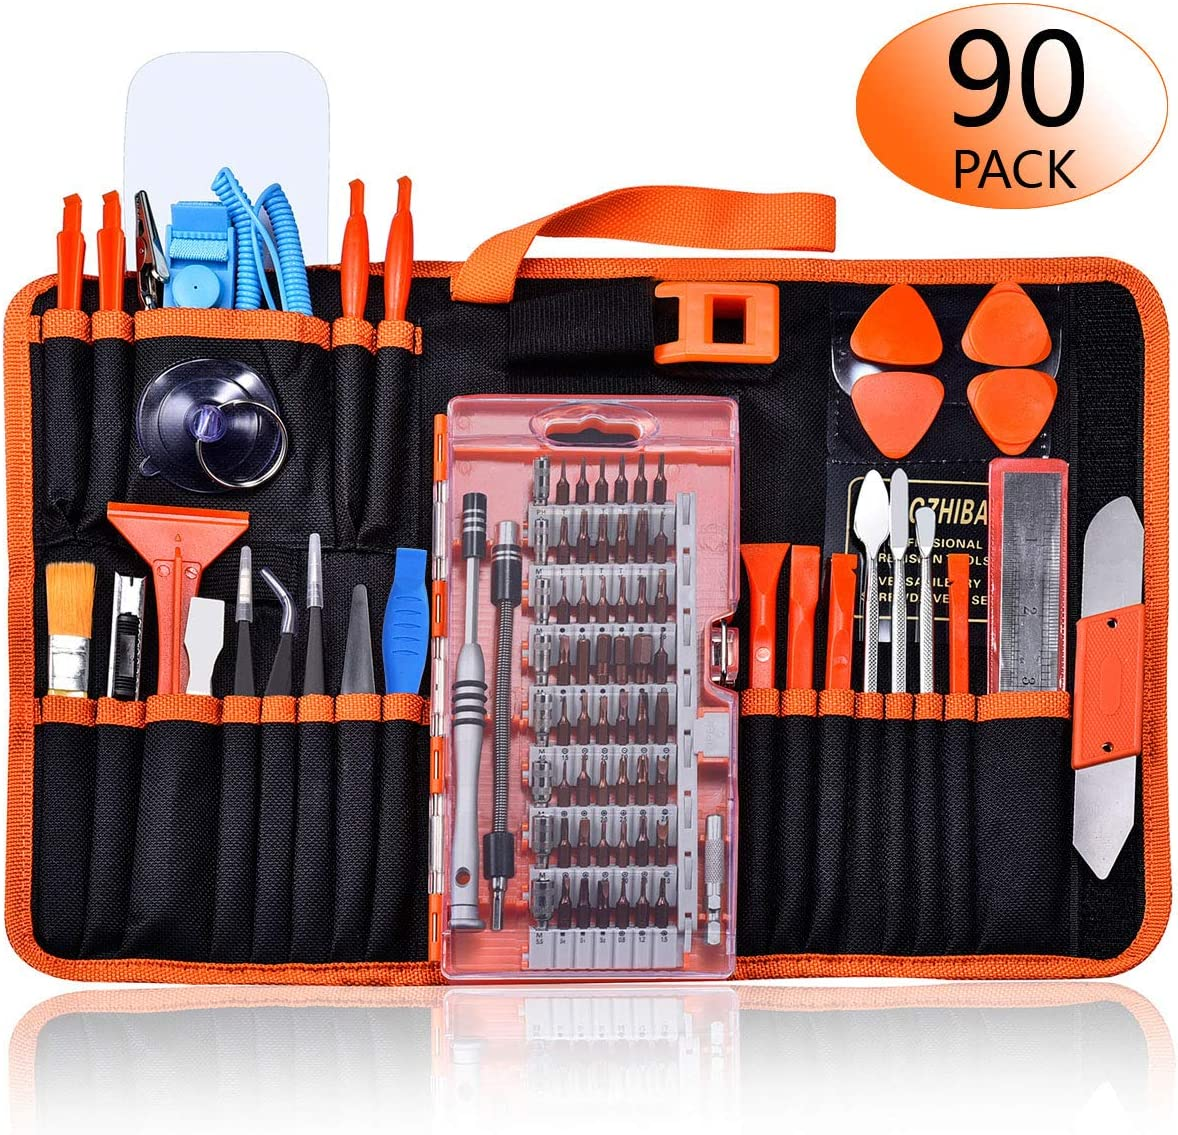 KANEED Professional Electronics Repair Tool Kit 22pcs//Set Repair Tools Kit for Mobile Phones